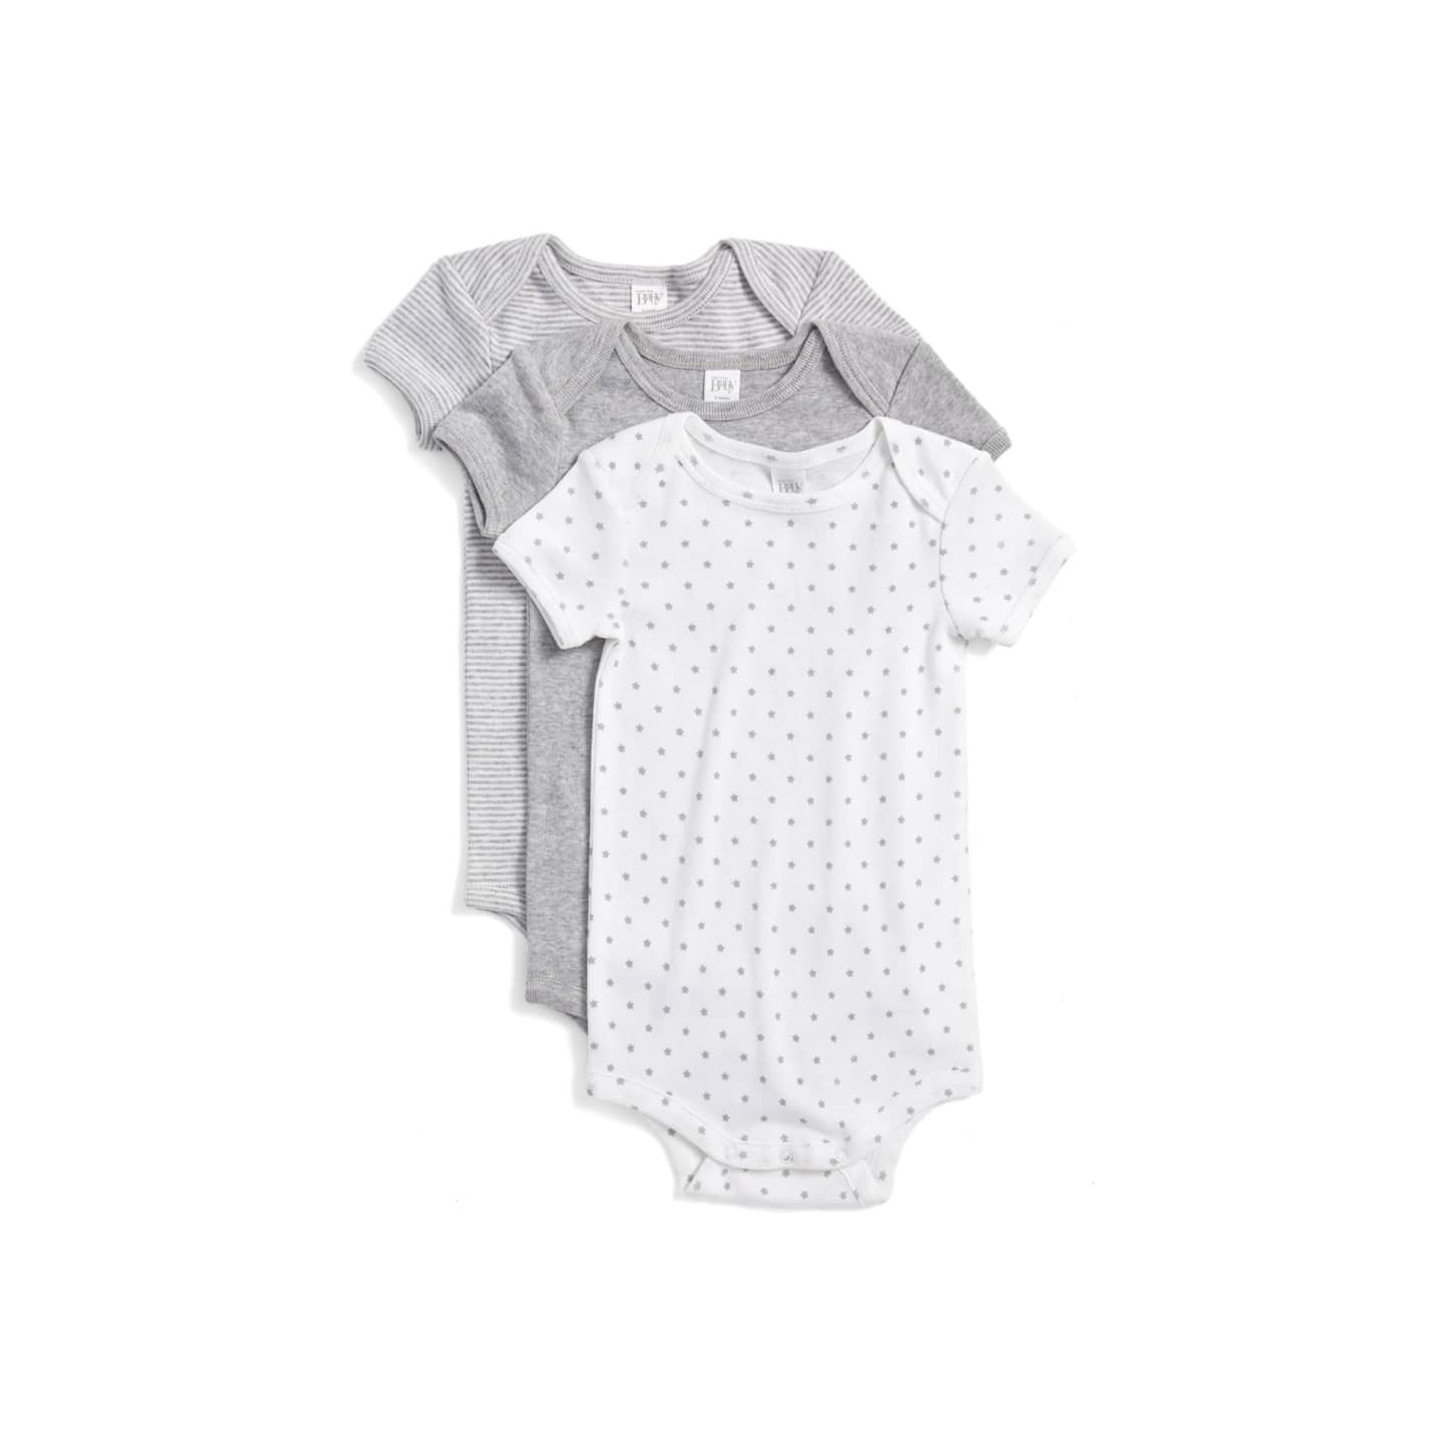 Nordstrom Baby Cotton Bodysuits